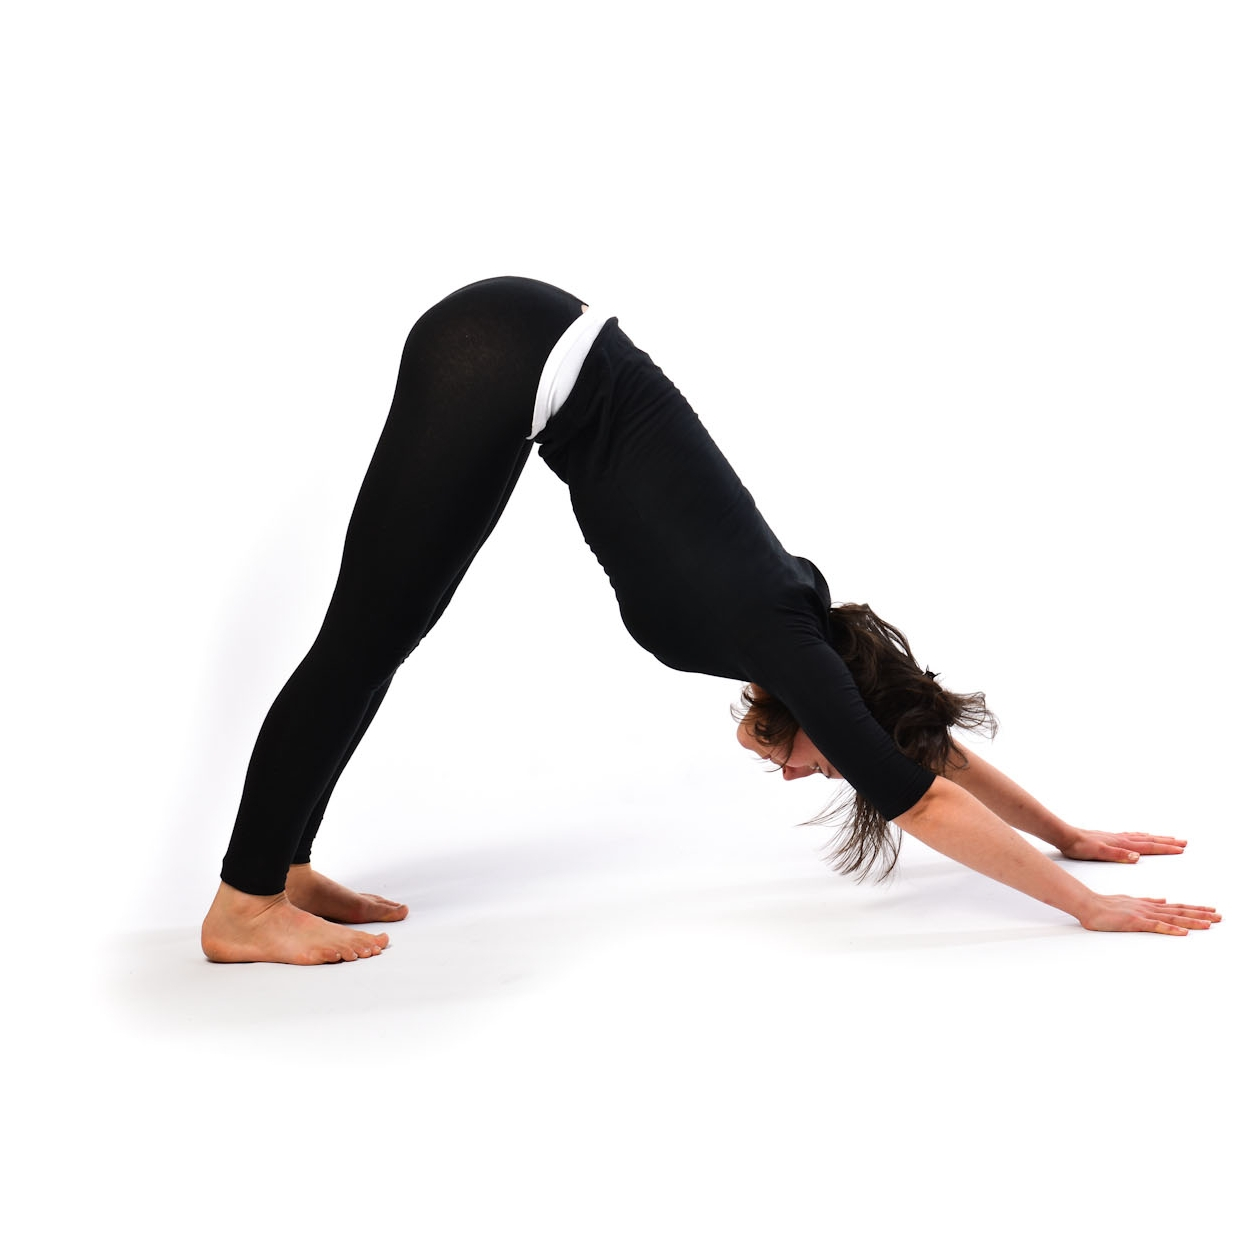 Mountain Pose In Order To Do This Stand Erect On The Ground Touch With Both Your Palms Straighten Legs Gradually